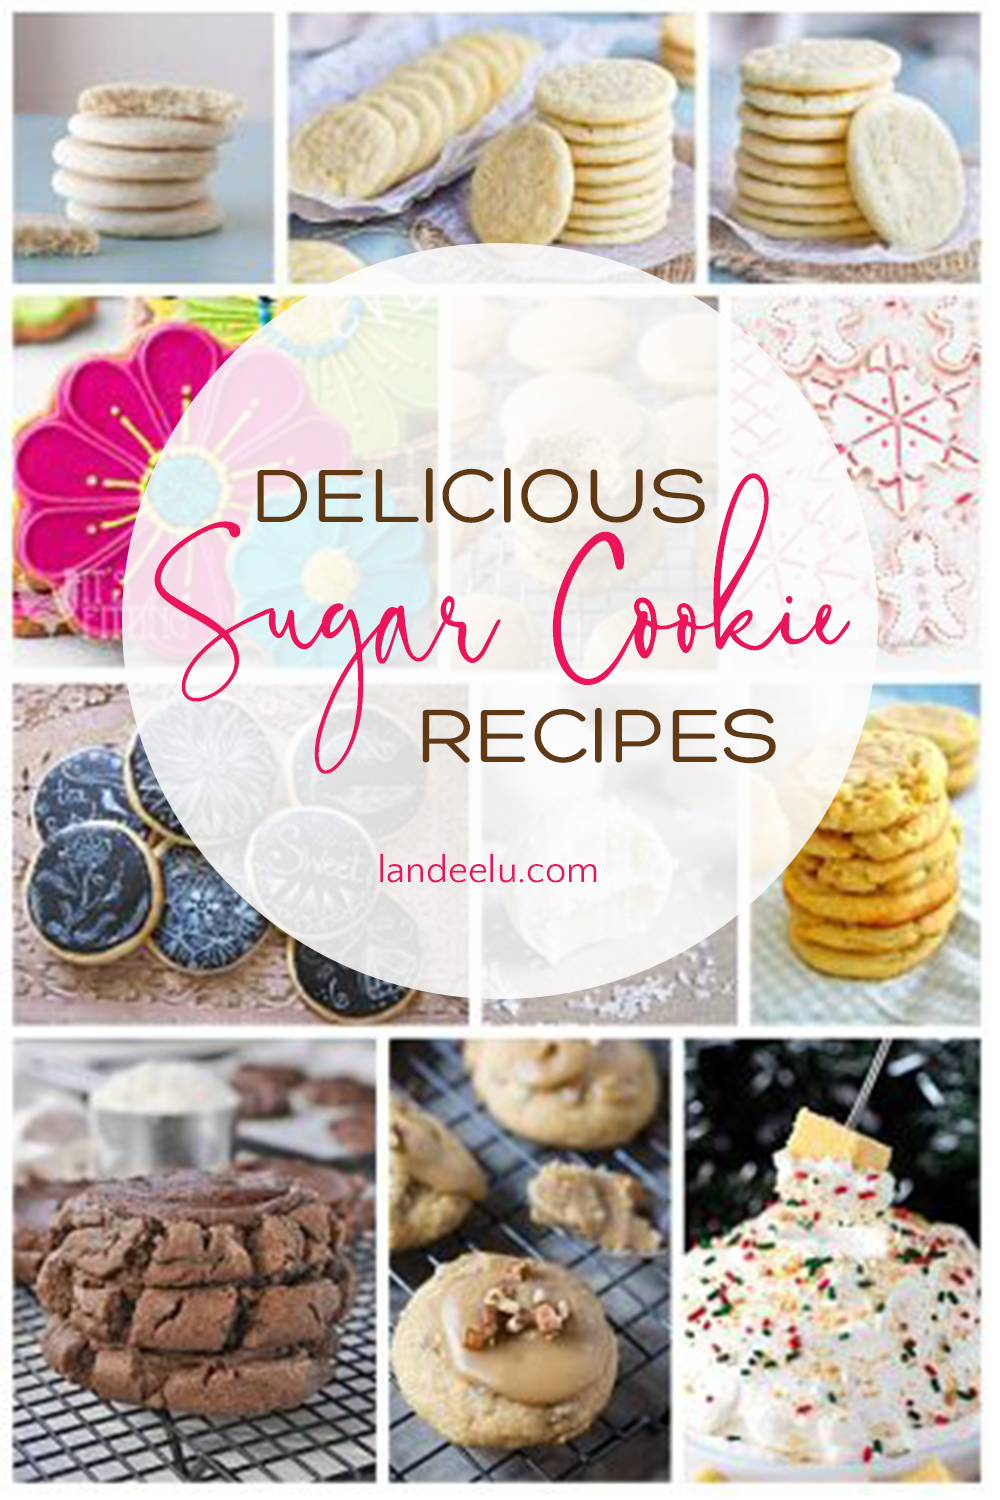 An amazing collection of the best sugar cookie recipes! Perfect for holidays or anytime! #sugarcookies #cookies #cookierecipes #sugarcookierecipes #baking